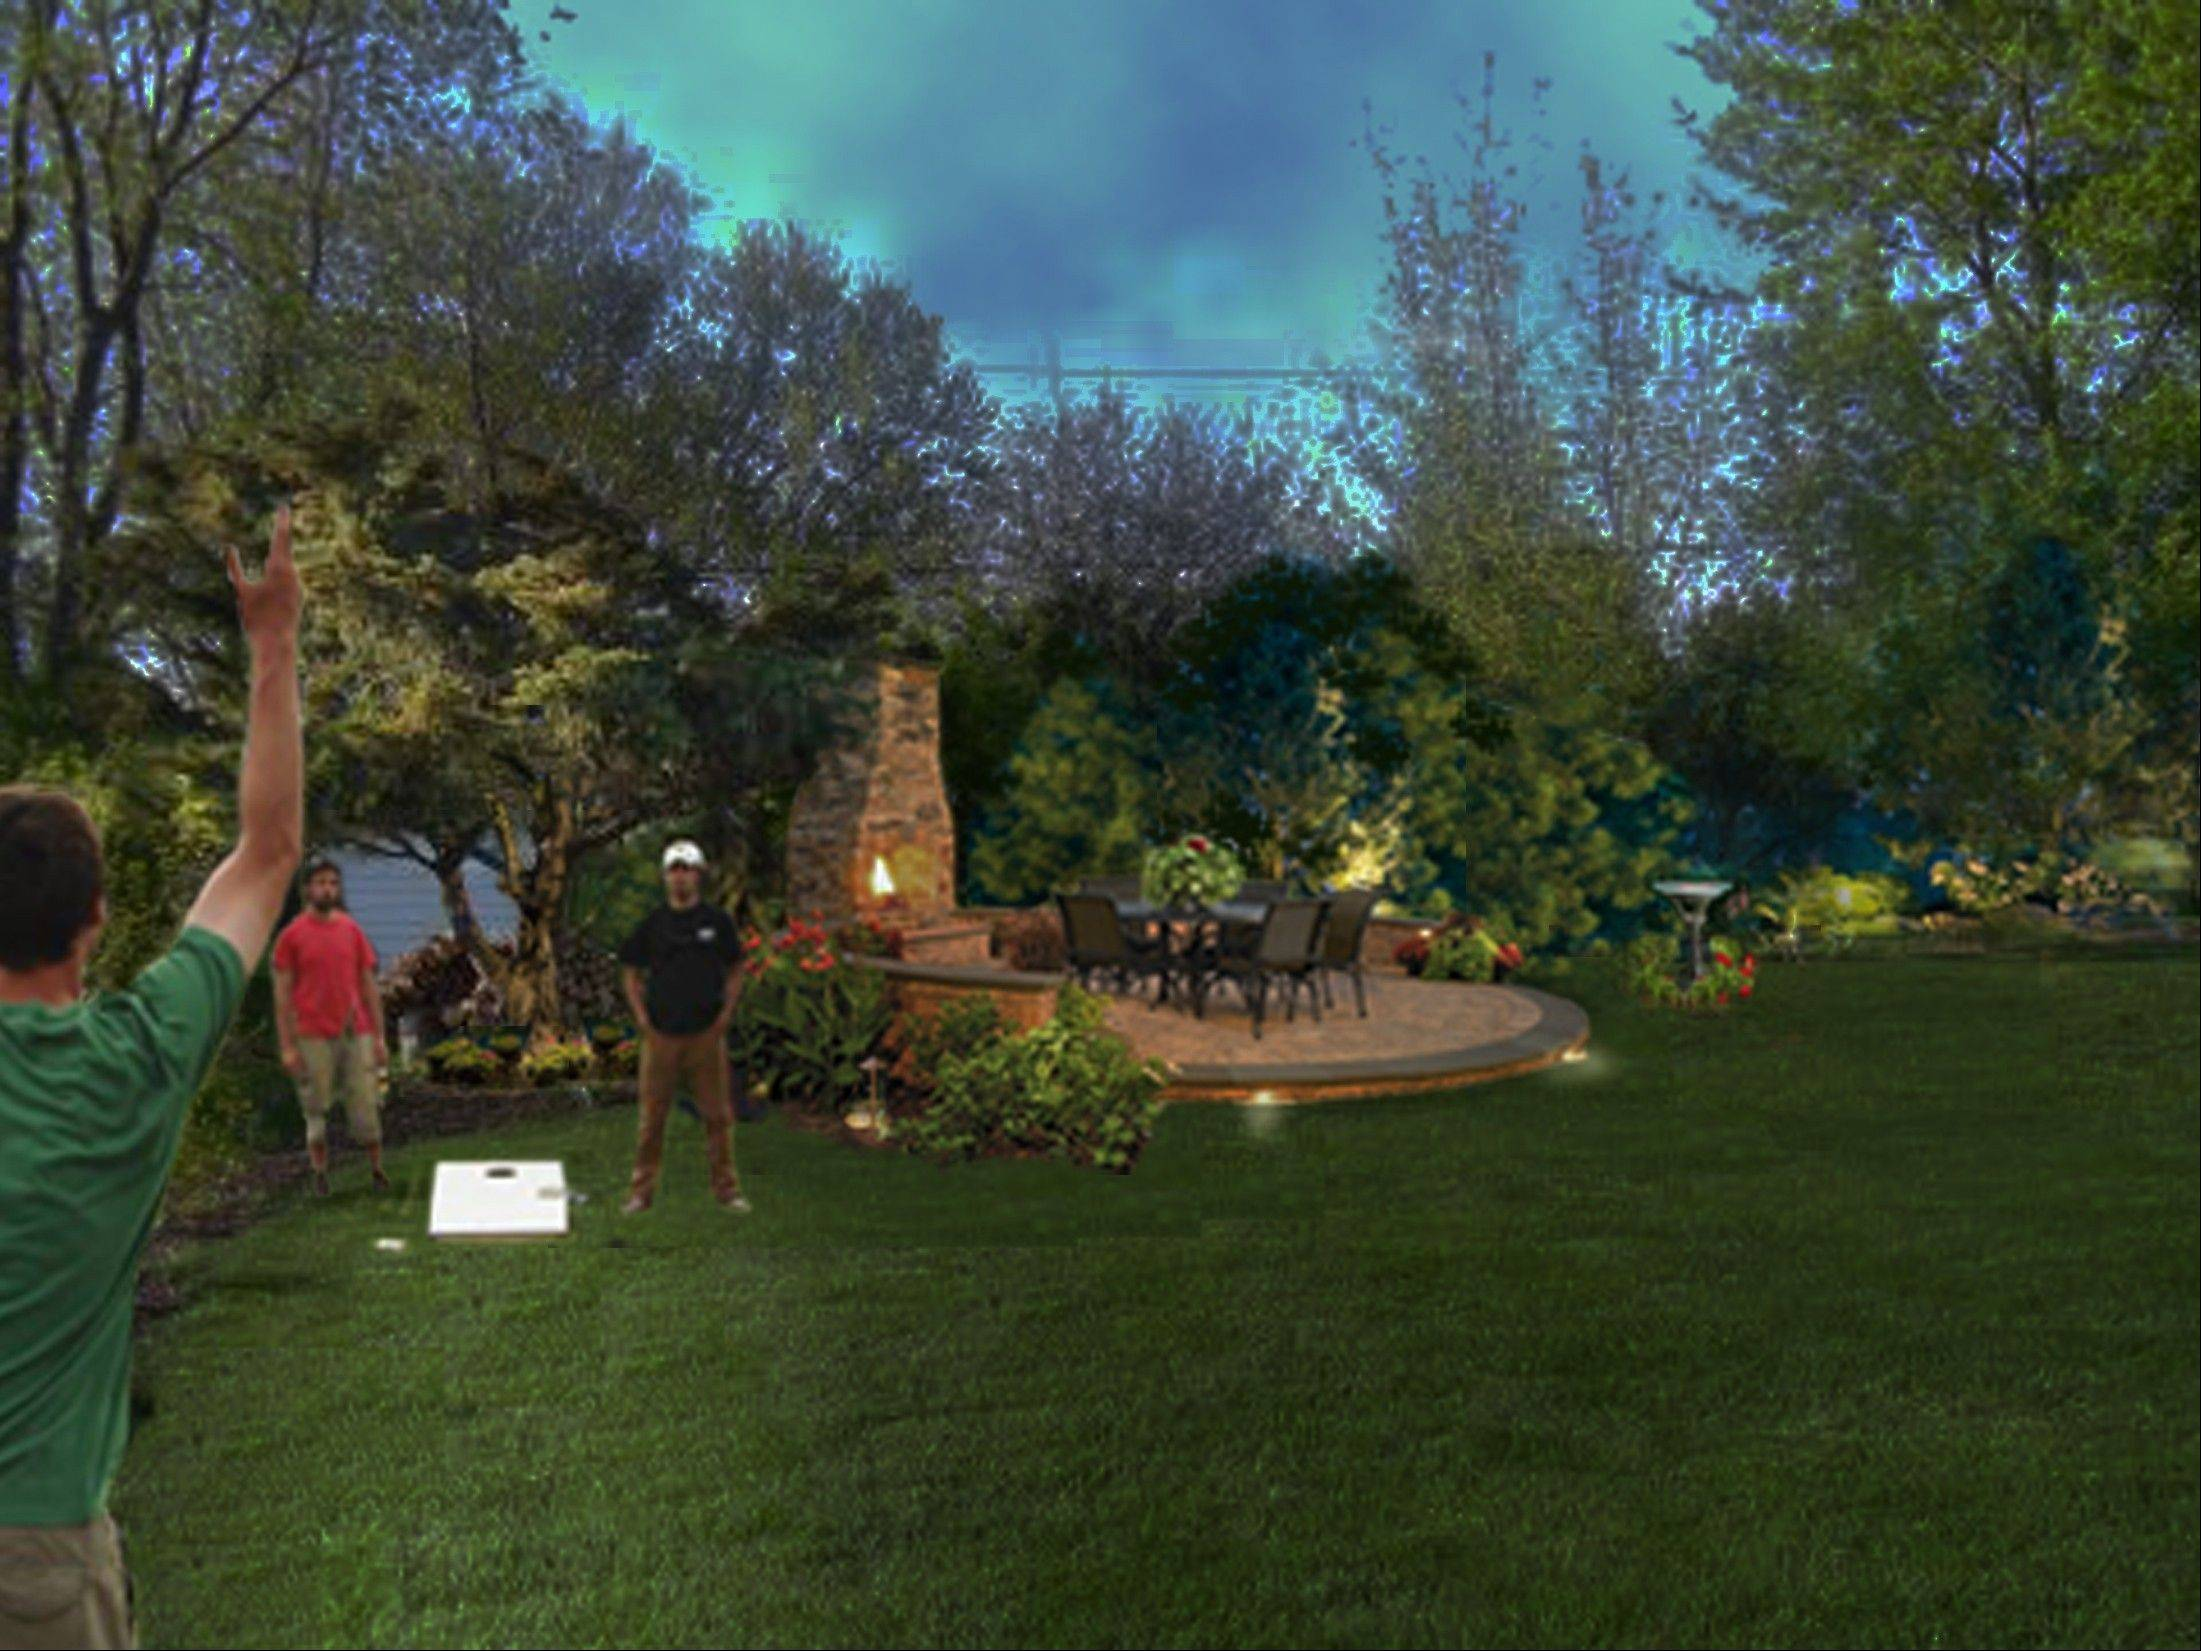 Northwest Lighting and Accents offers this design to make a backyard an entertainment mecca.